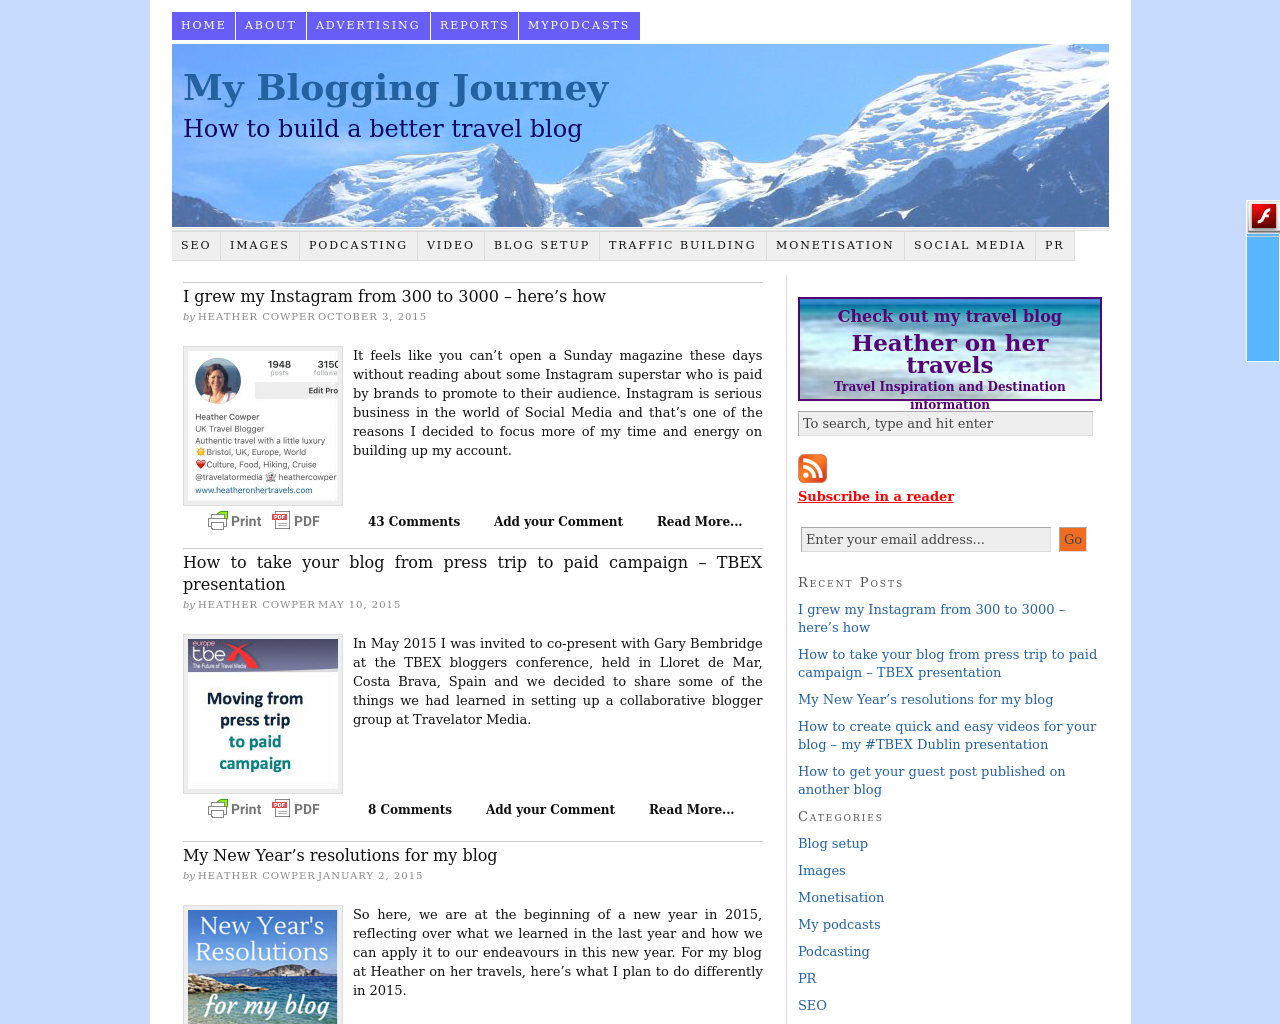 My-Blogging-Journey-Advertising-Reviews-Pricing